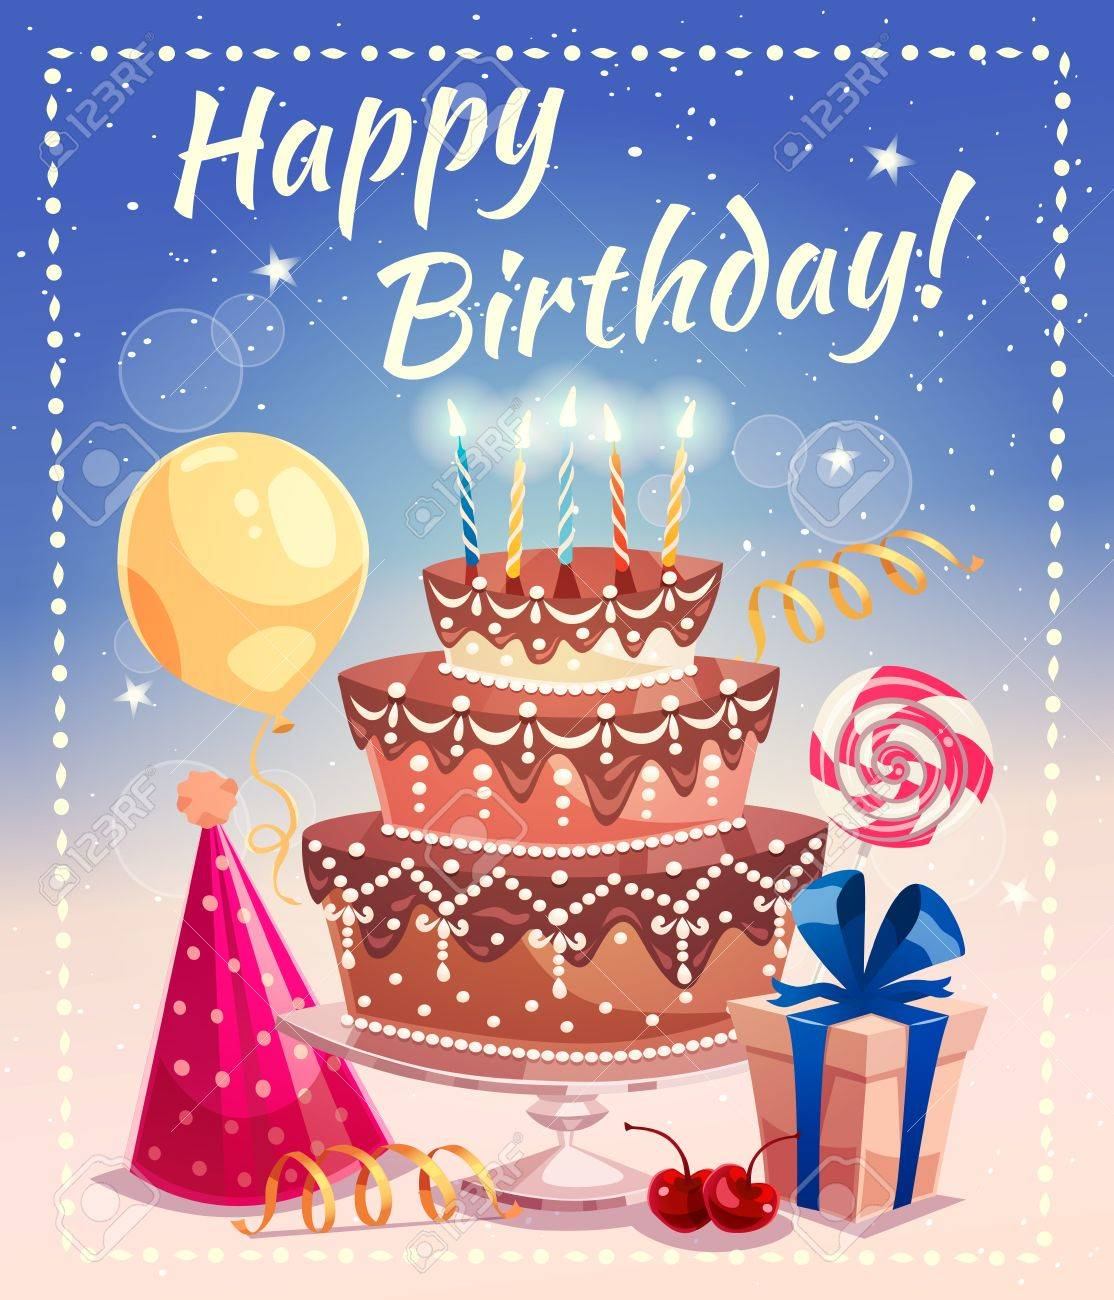 Happy Birthday Greeting Card With Big Cake Candles Gift Box Tied Royalty Free Cliparts Vectors And Stock Illustration Image 68111614